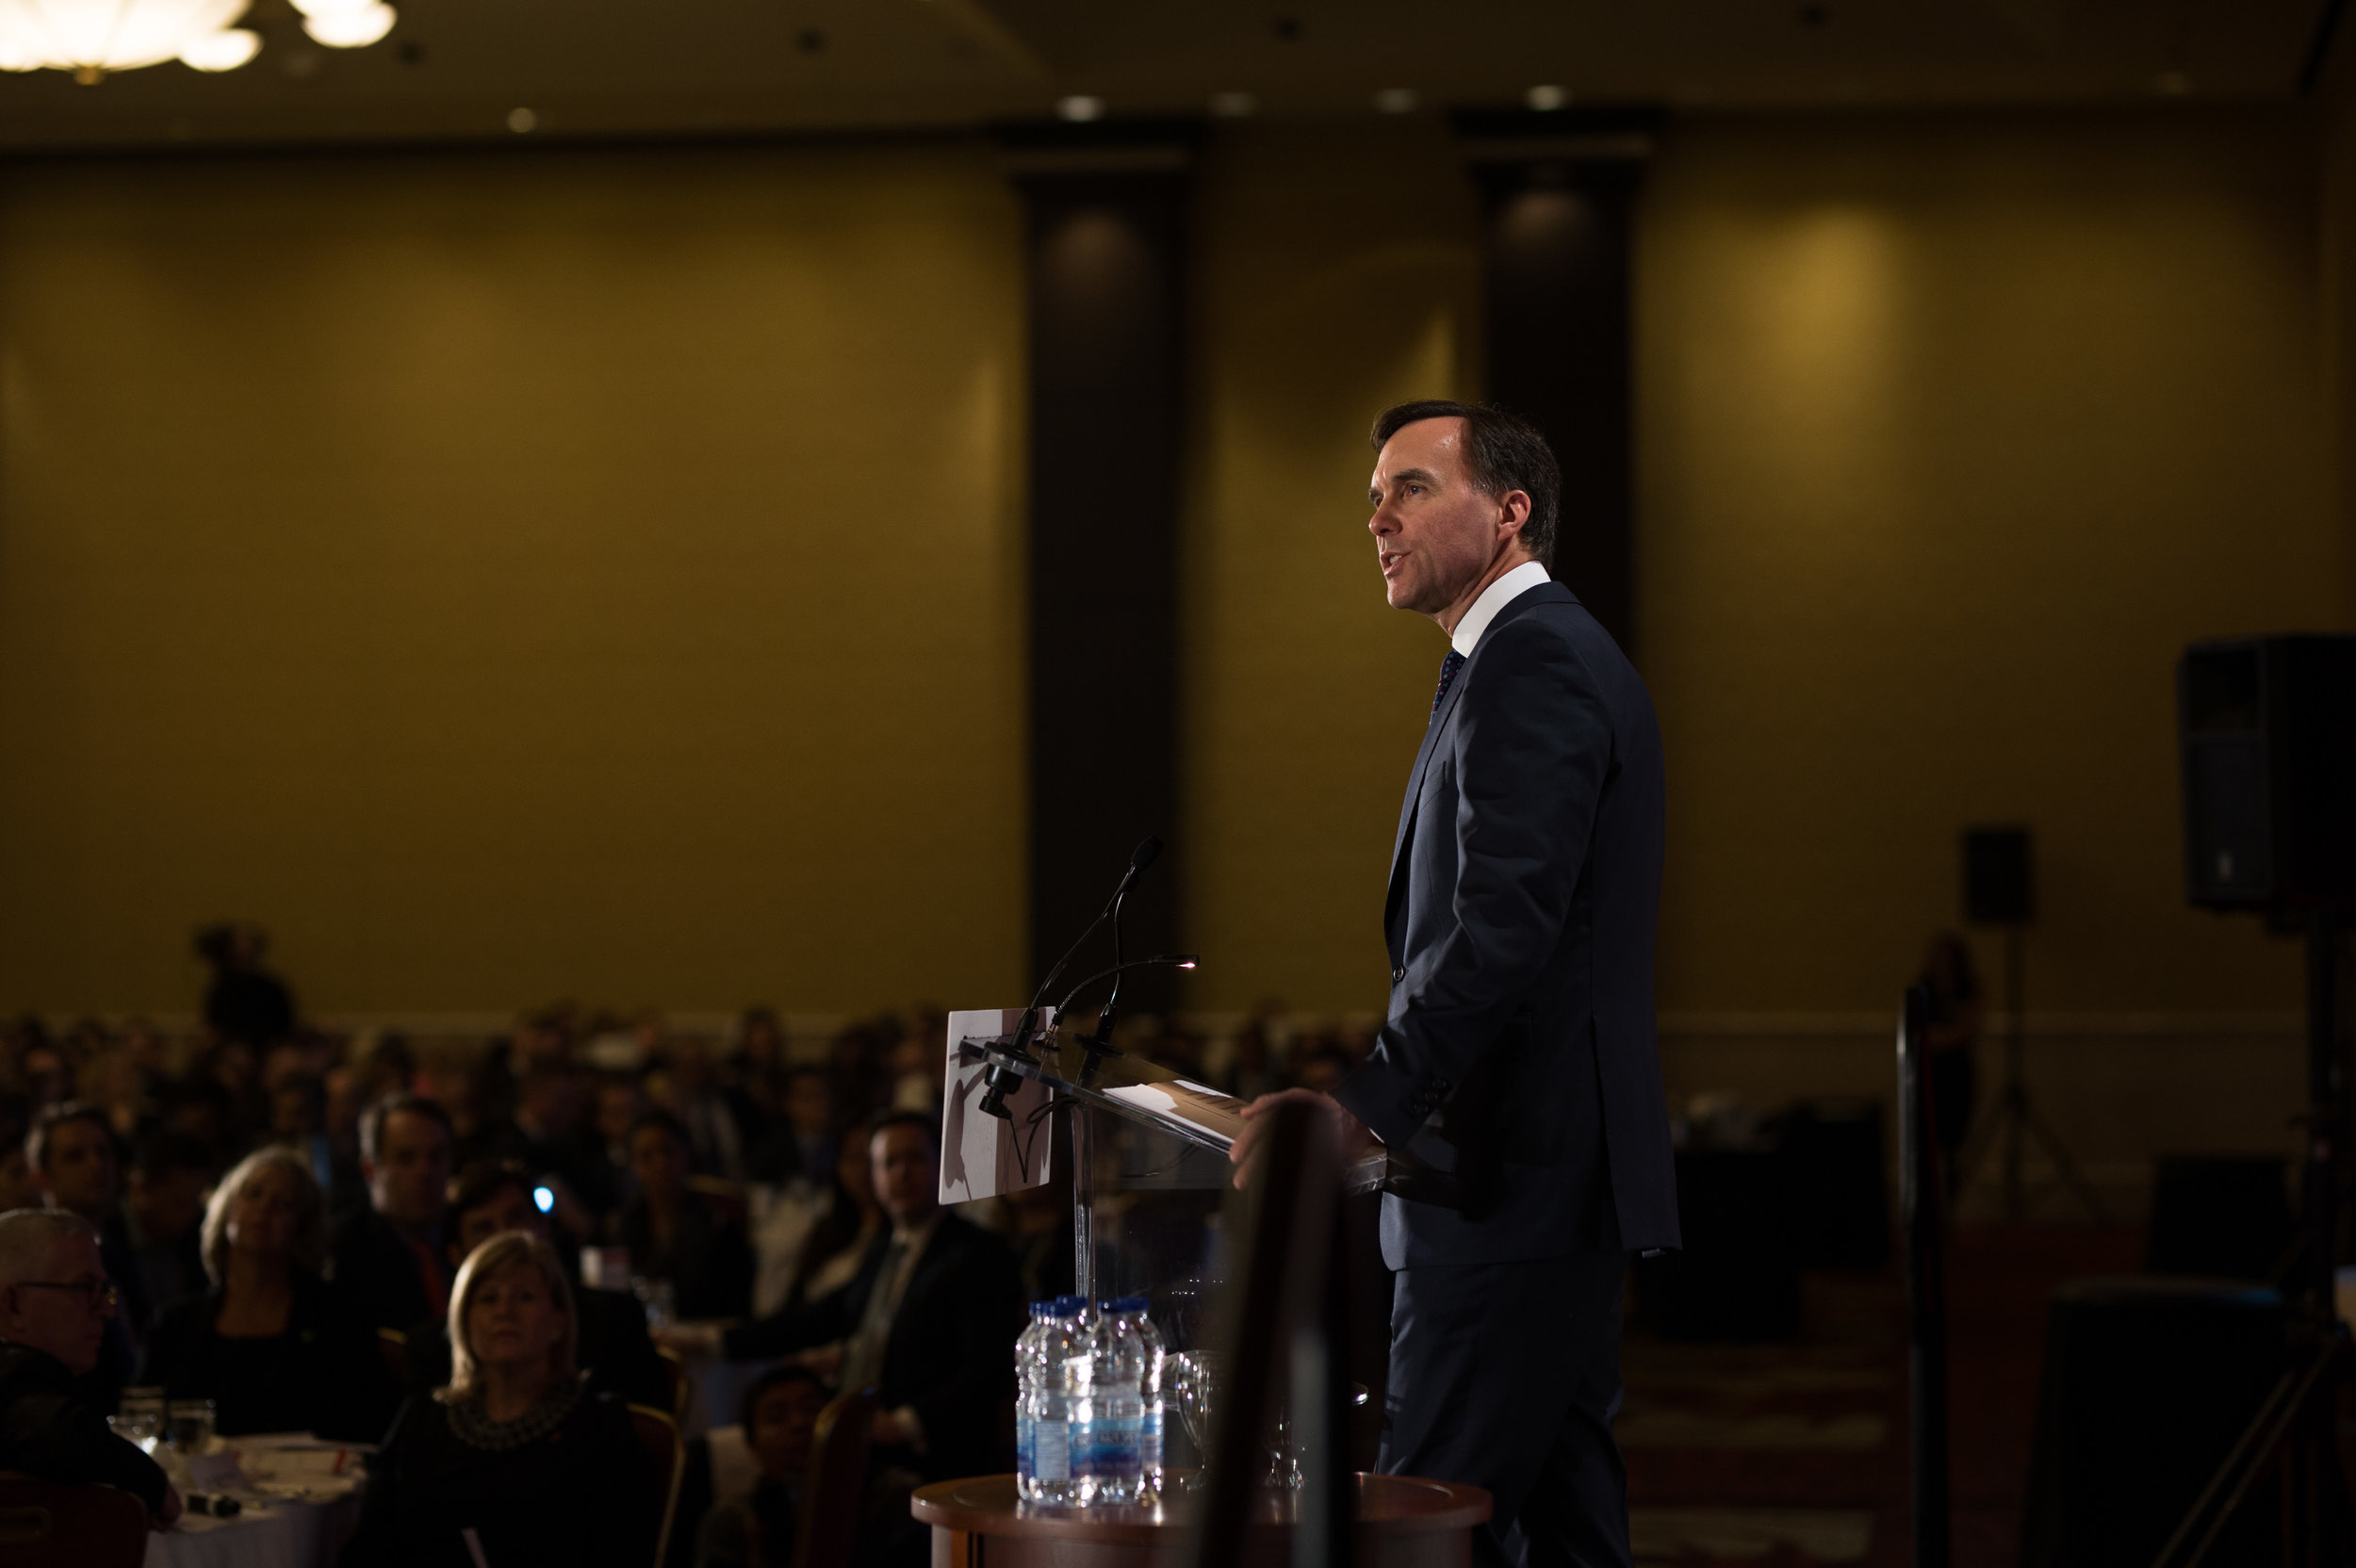 Shot for the Empire Club of Canada. The Honourable Bill Morneau, Minister of Finance.